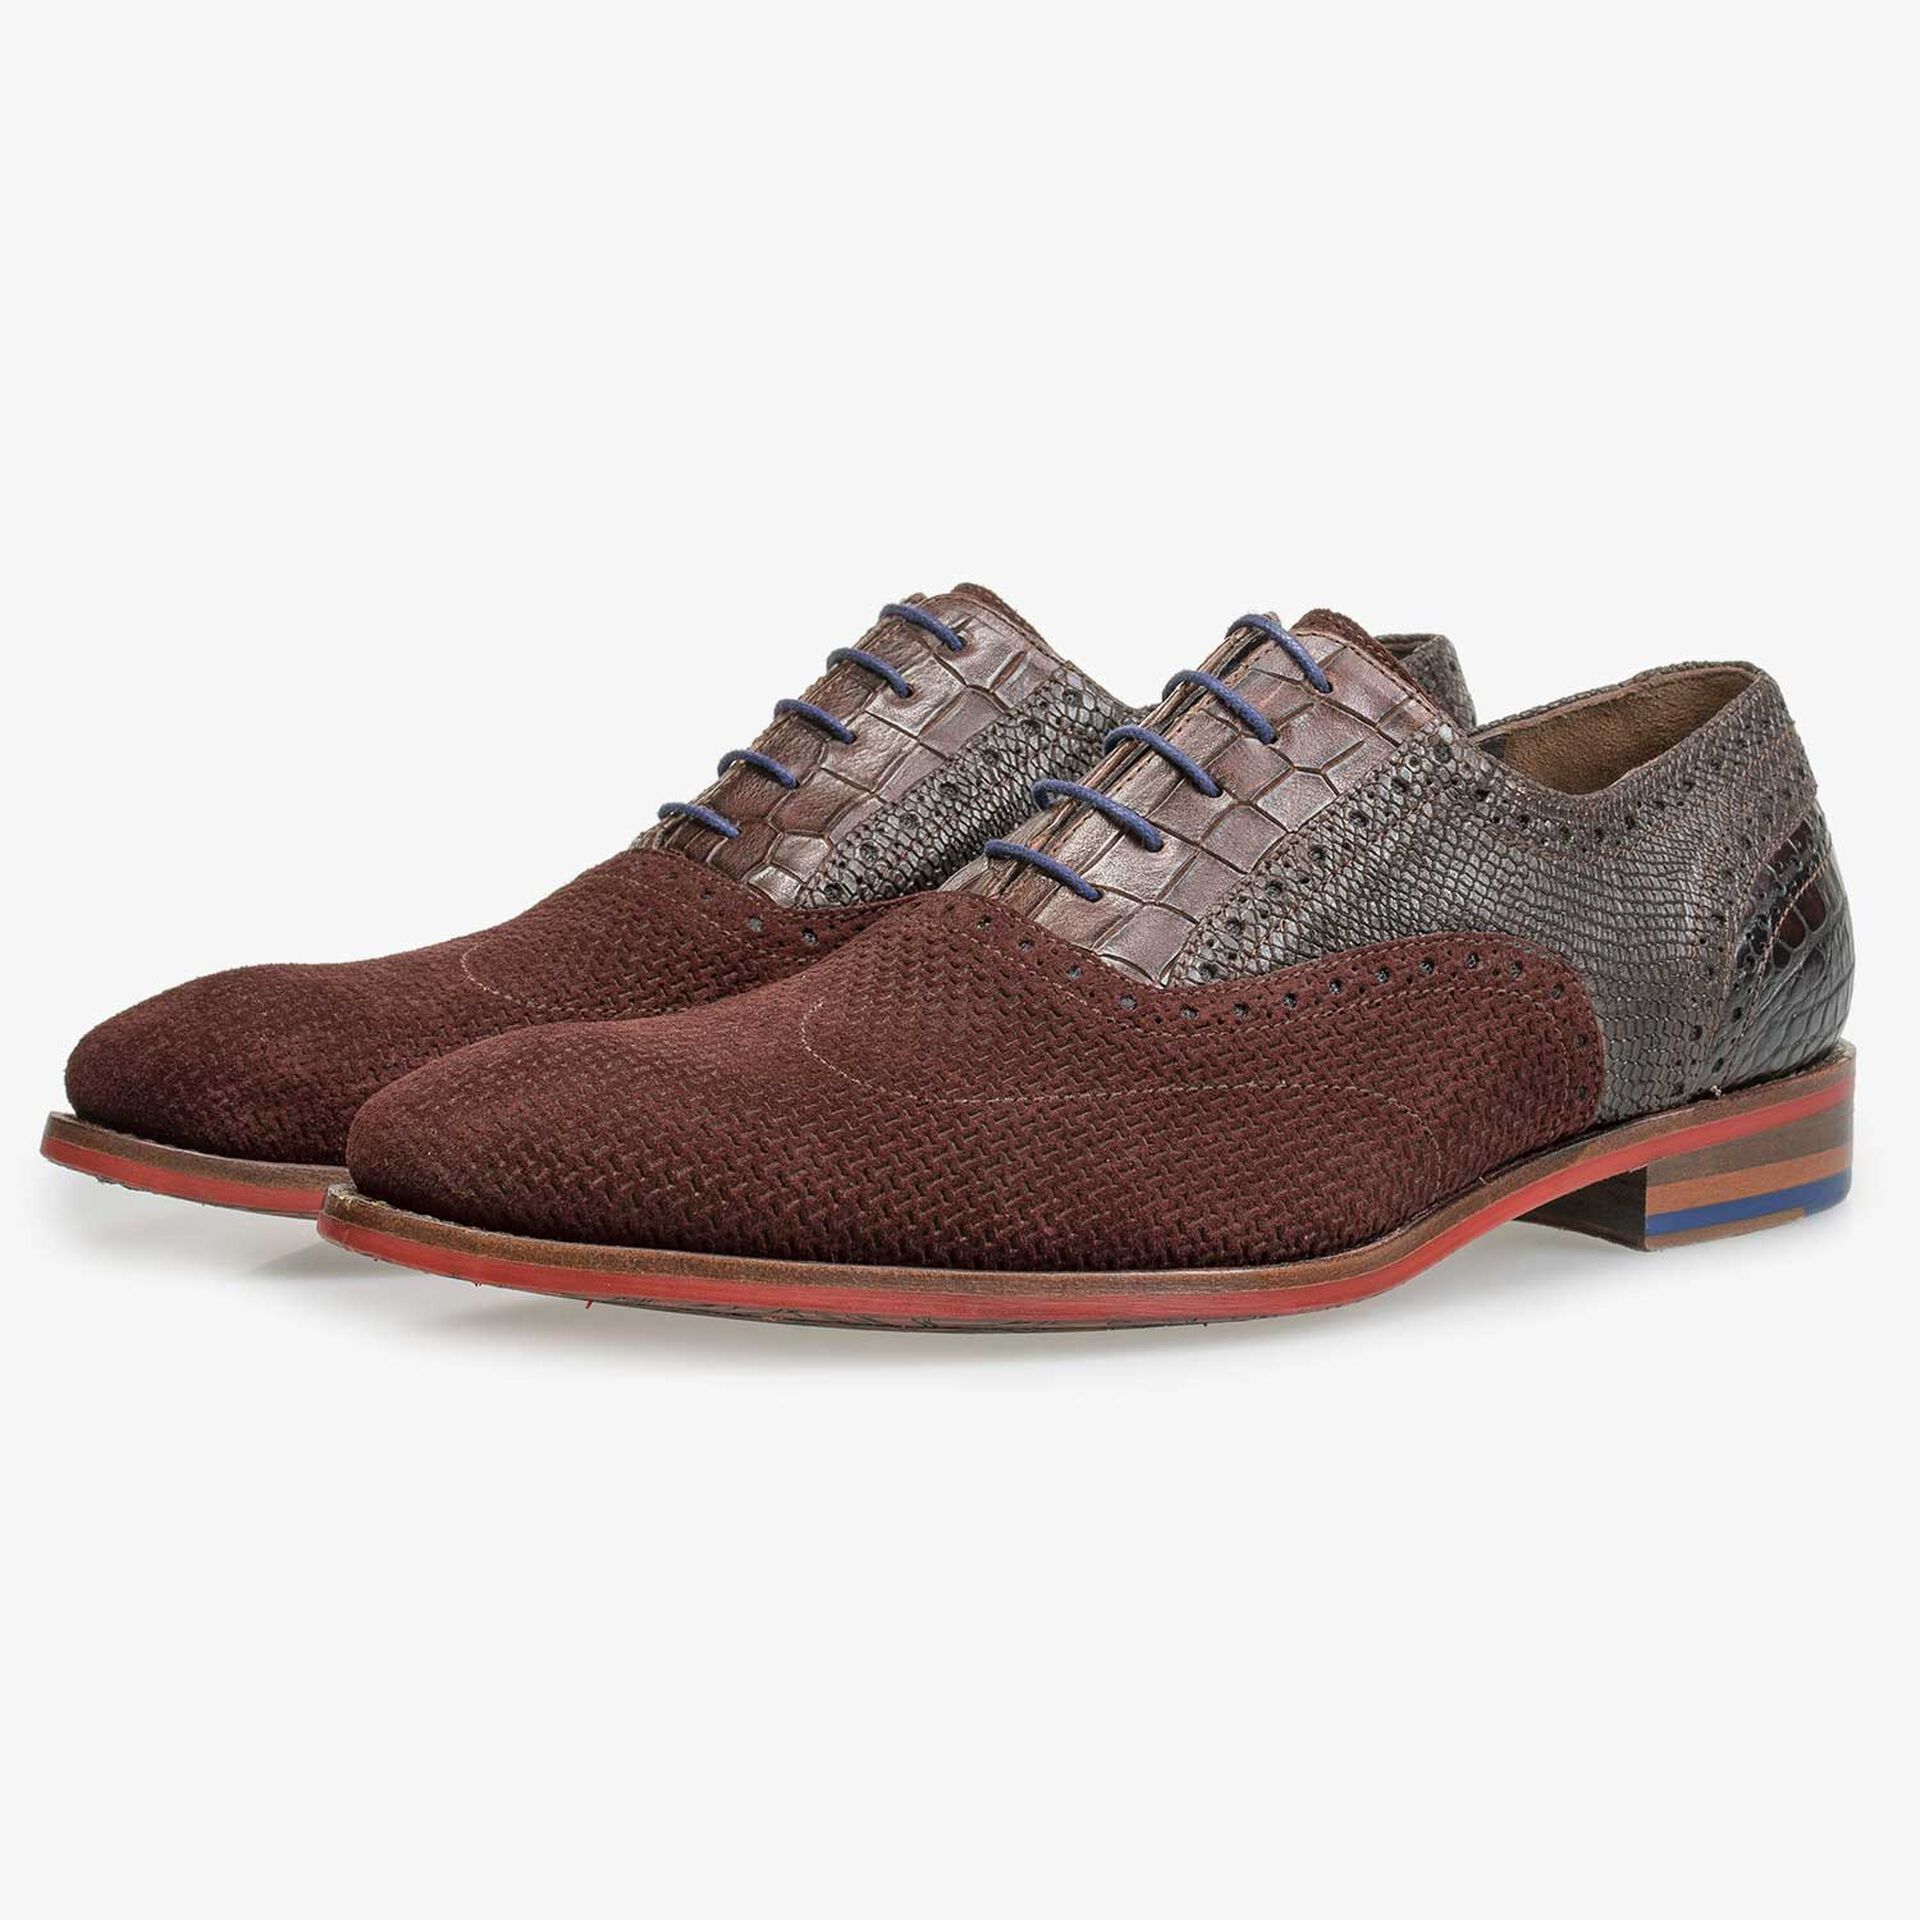 Burgundy red brogue lace shoe